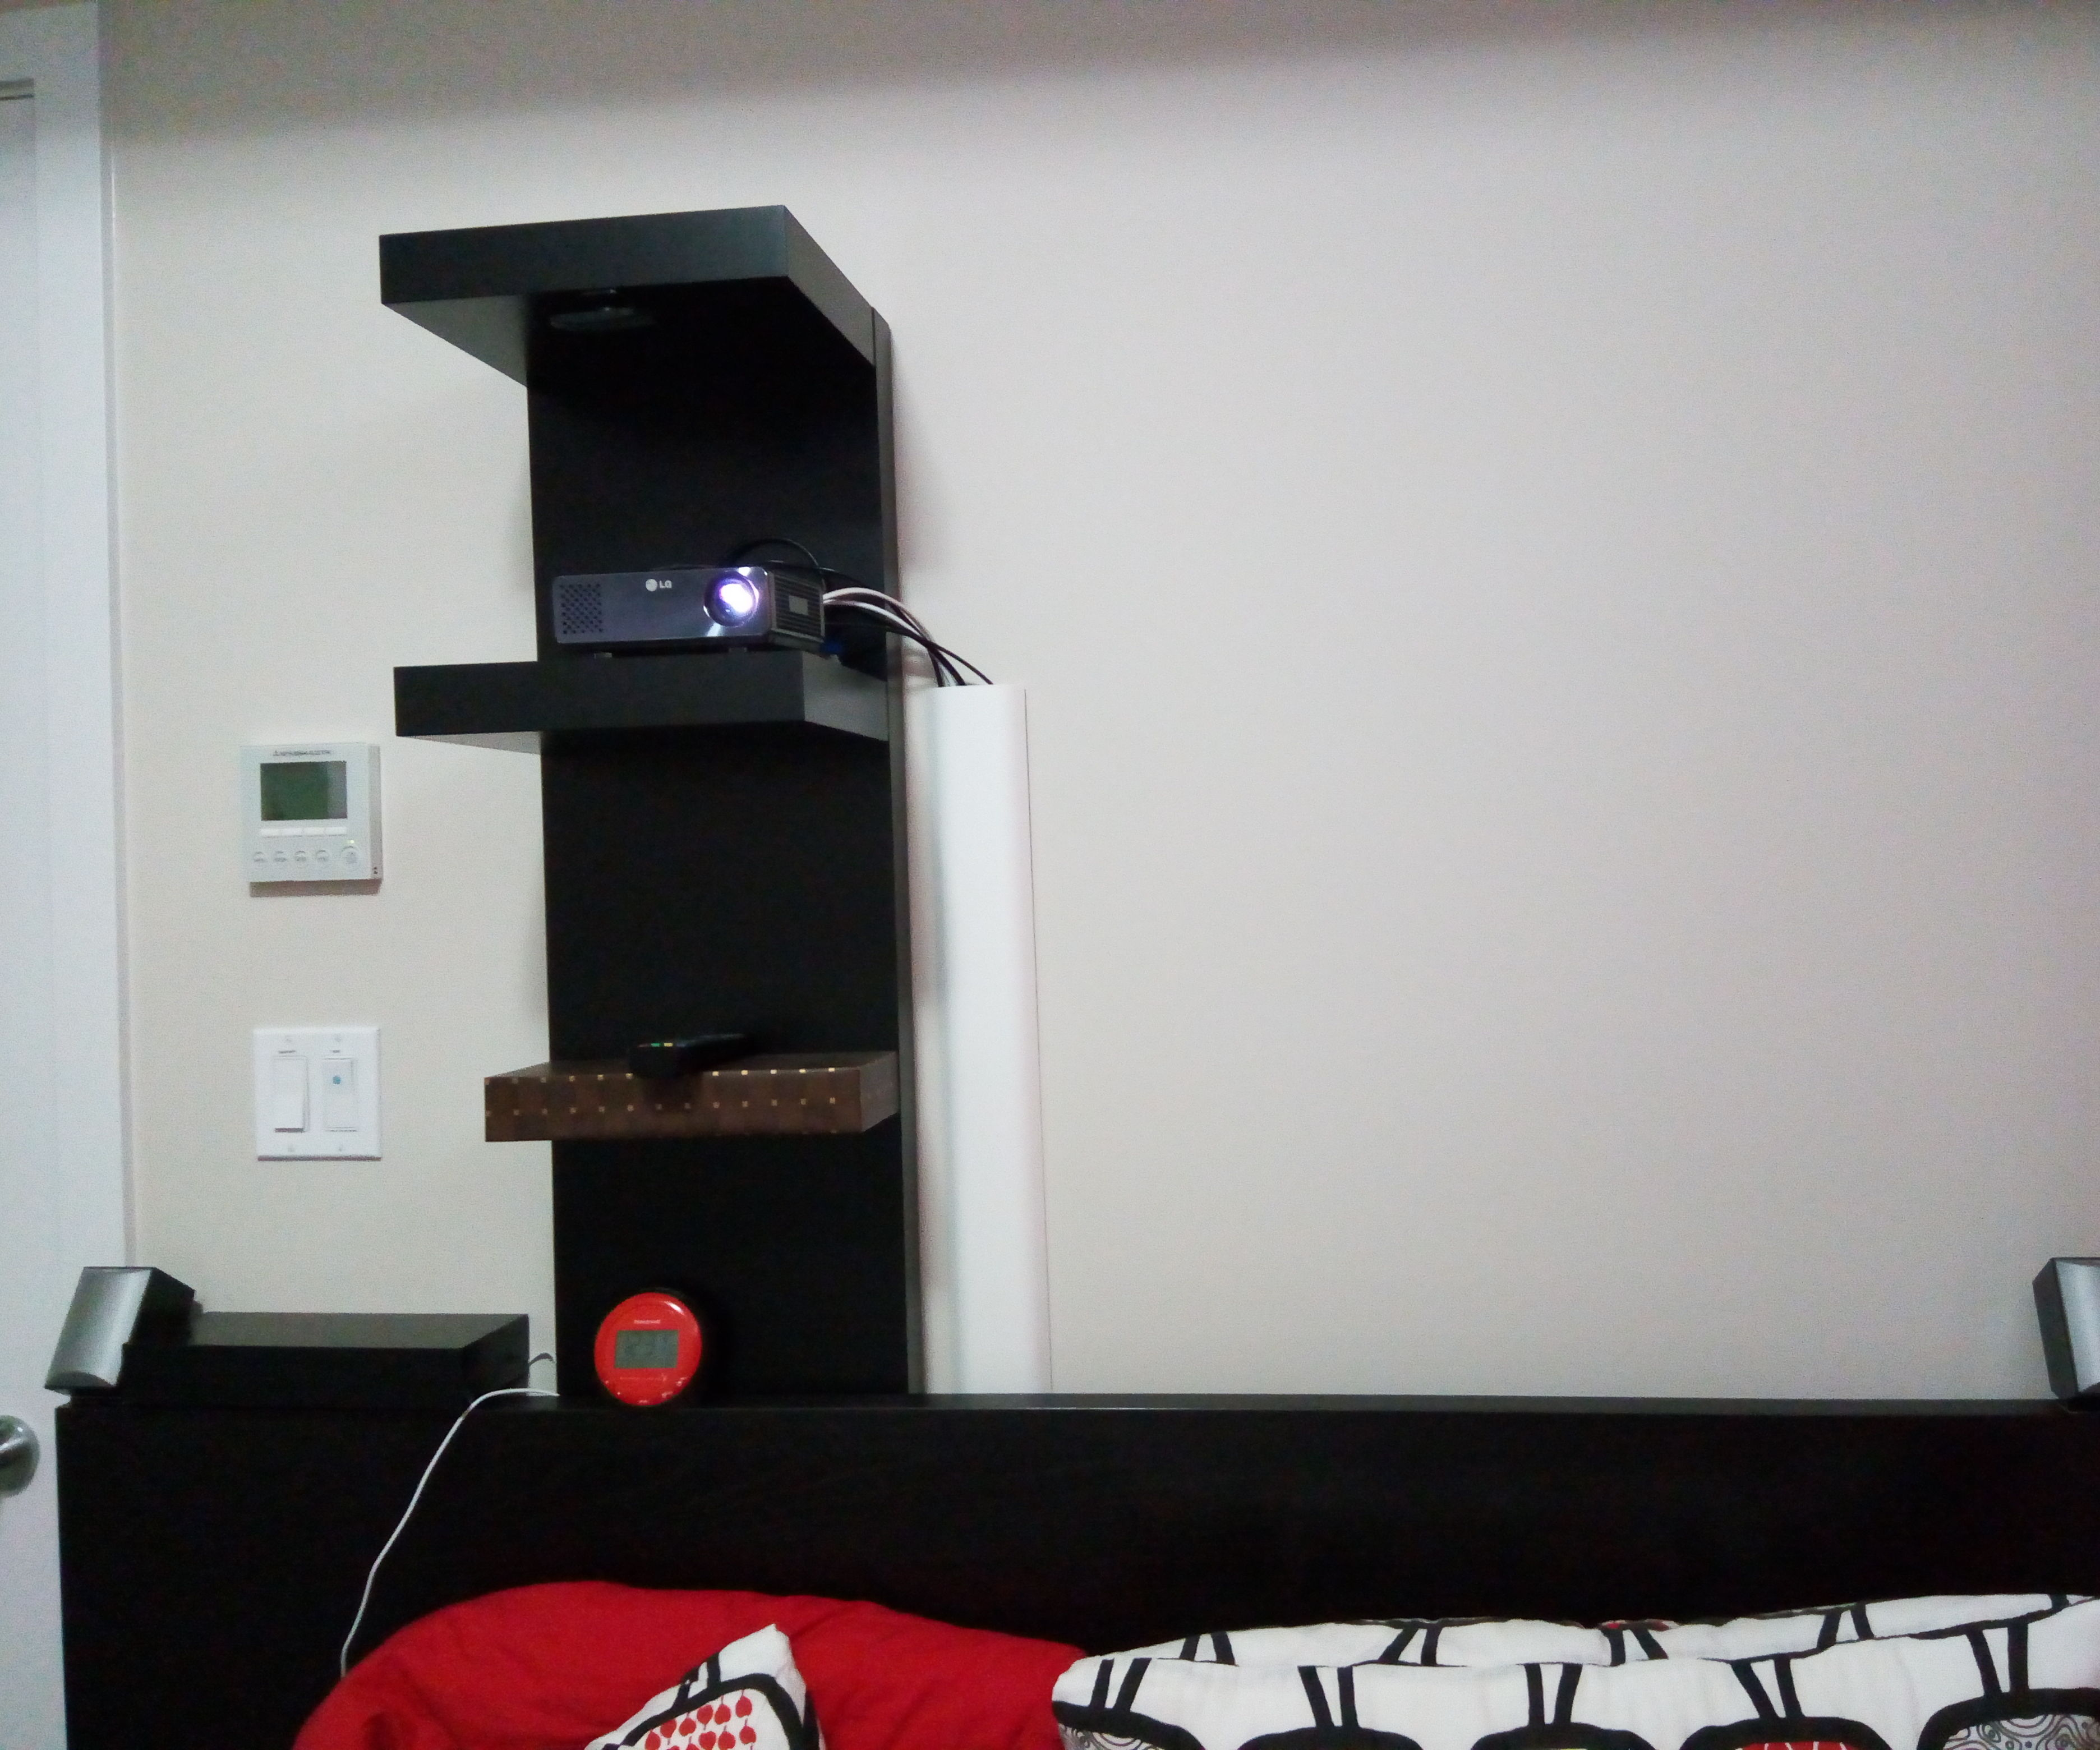 premium selection 1c7e1 bd378 Mount Projector Without Drilling With IKEA LACK Shelf: 5 ...